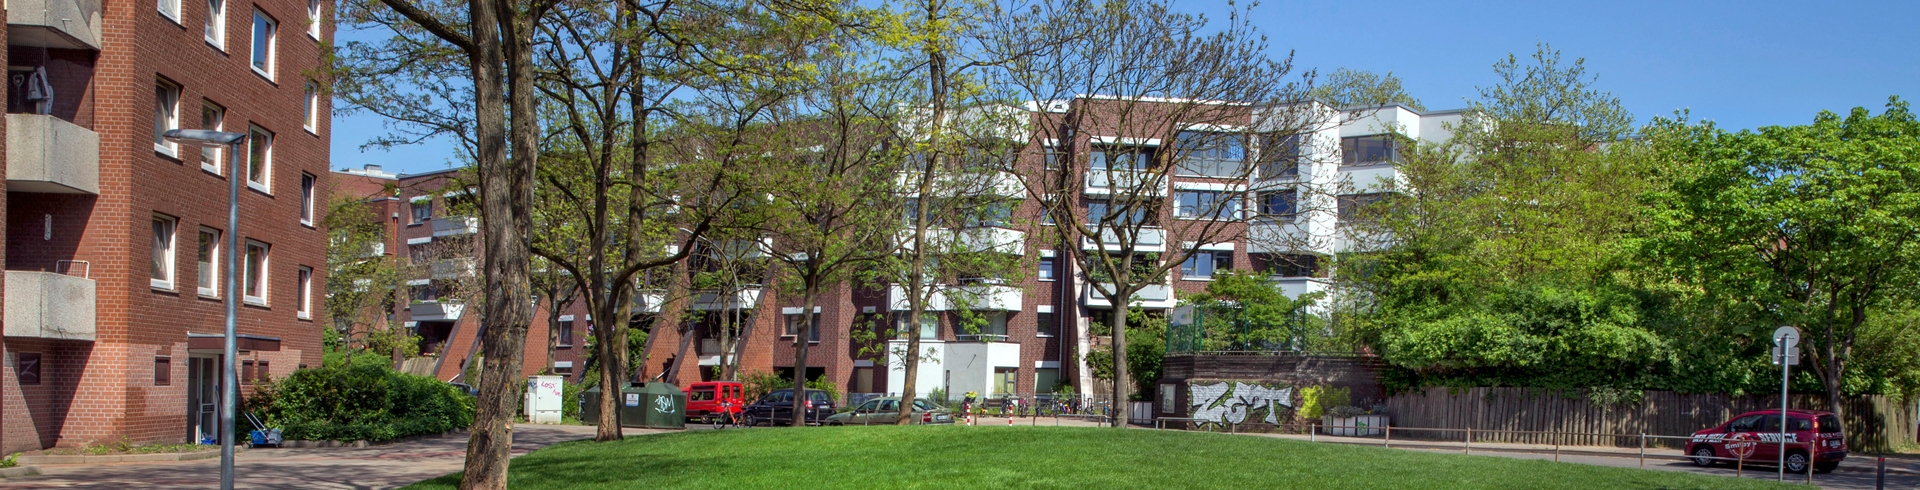 Otto Wulff Housing Improvement District Steilshoop Hamburg